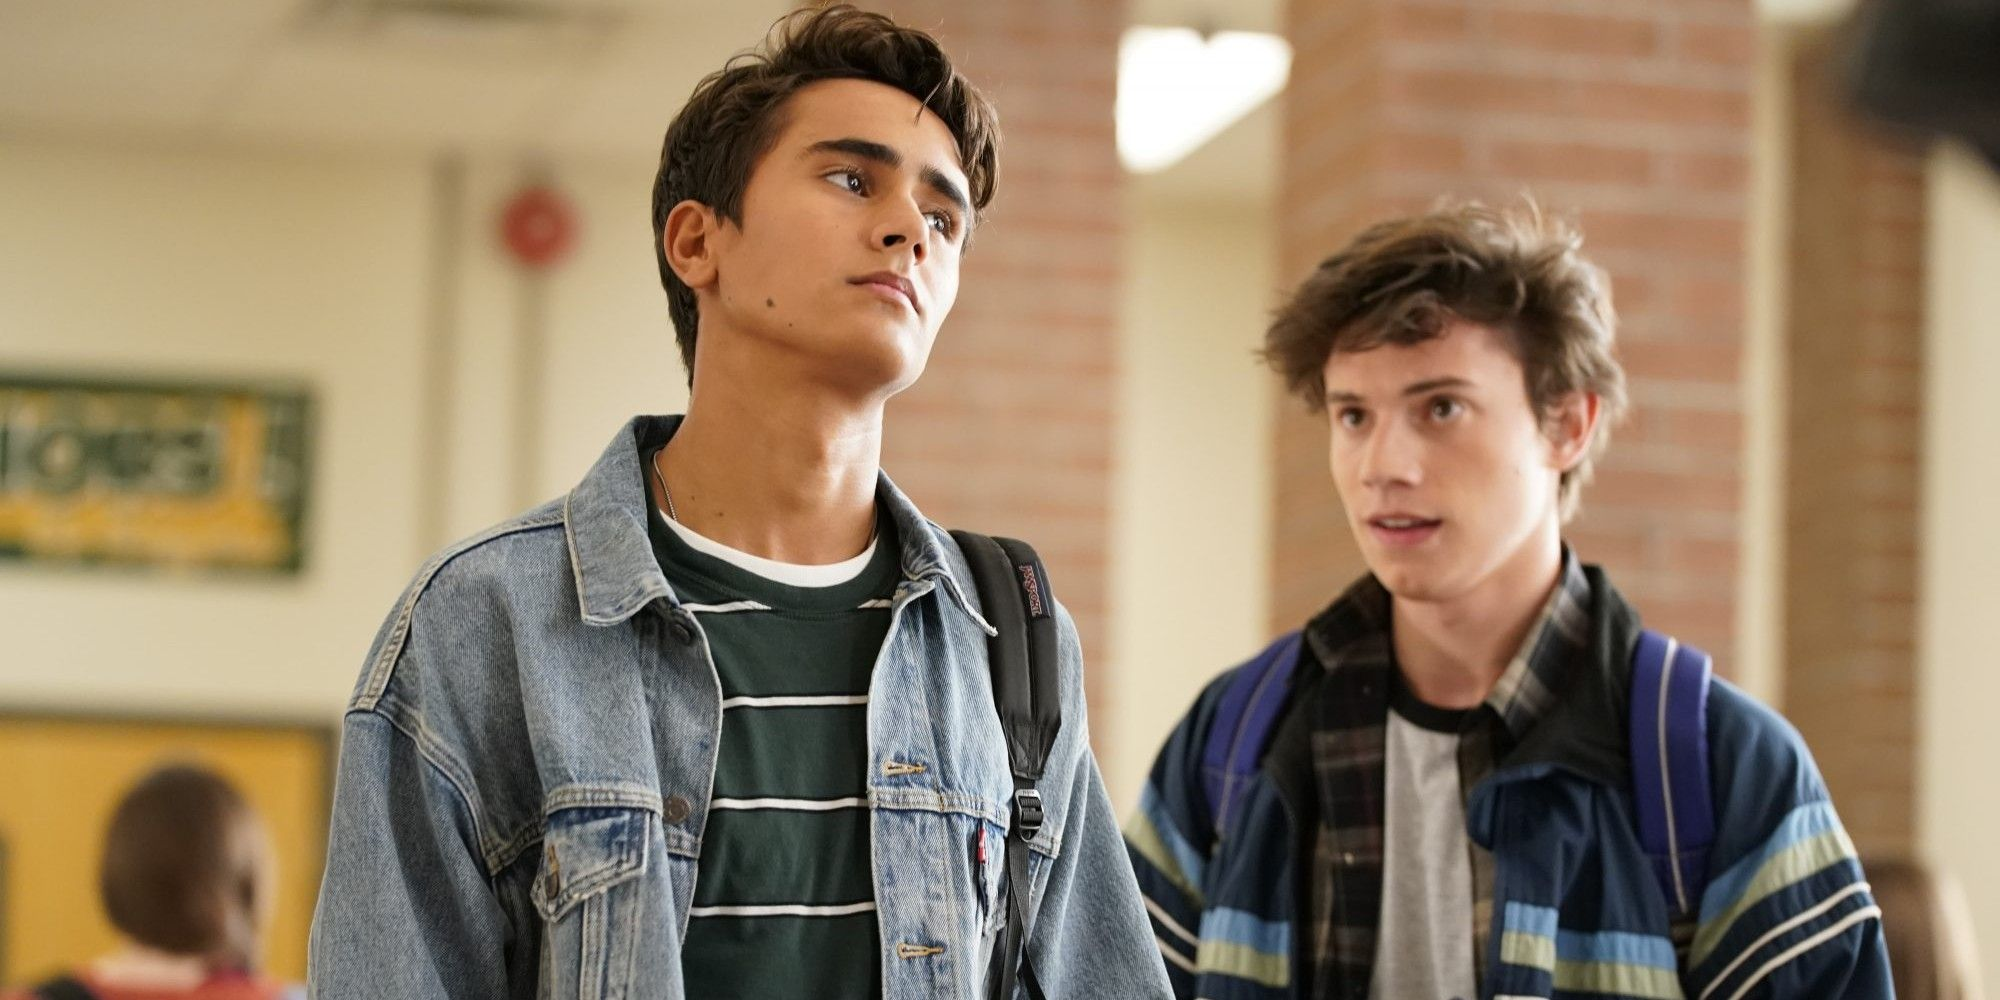 Love, Simon Show Gets Official Title As It Moves From